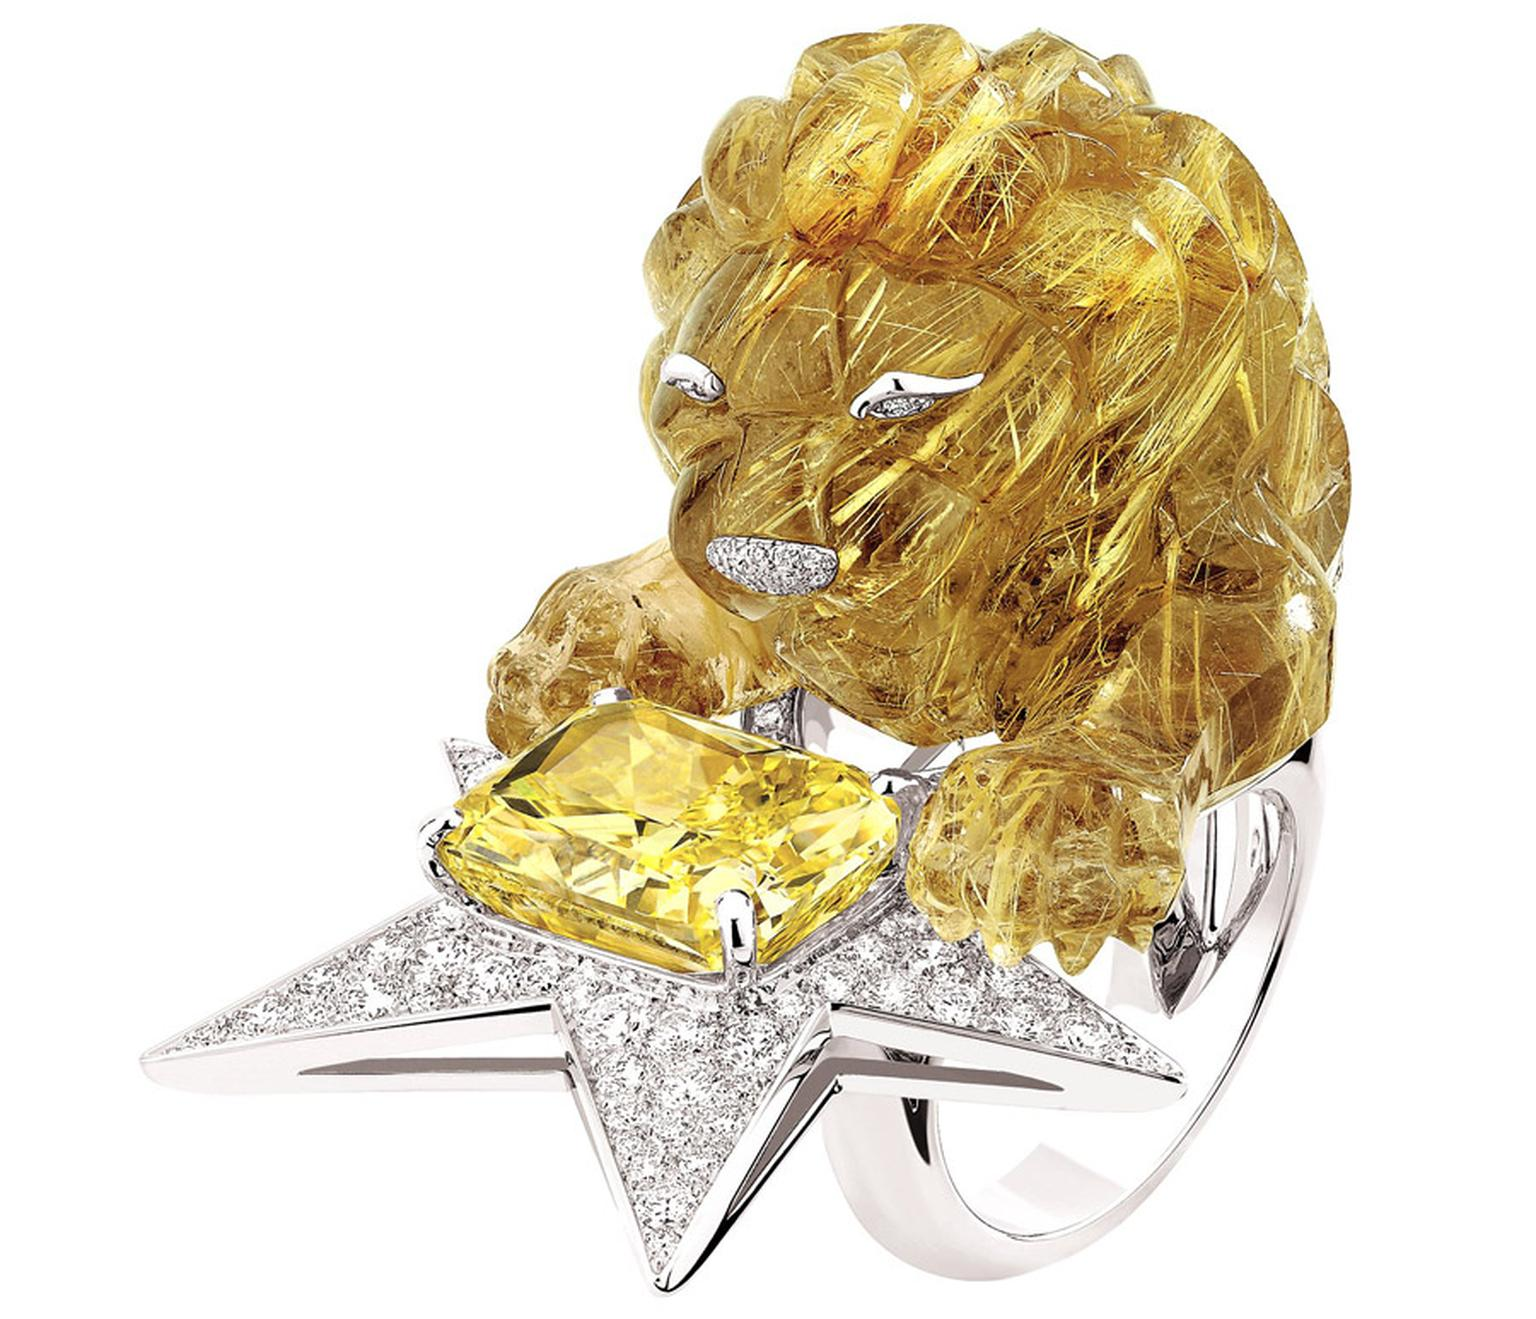 Chanel-Bague-Constellation-du-Lion-Jaune